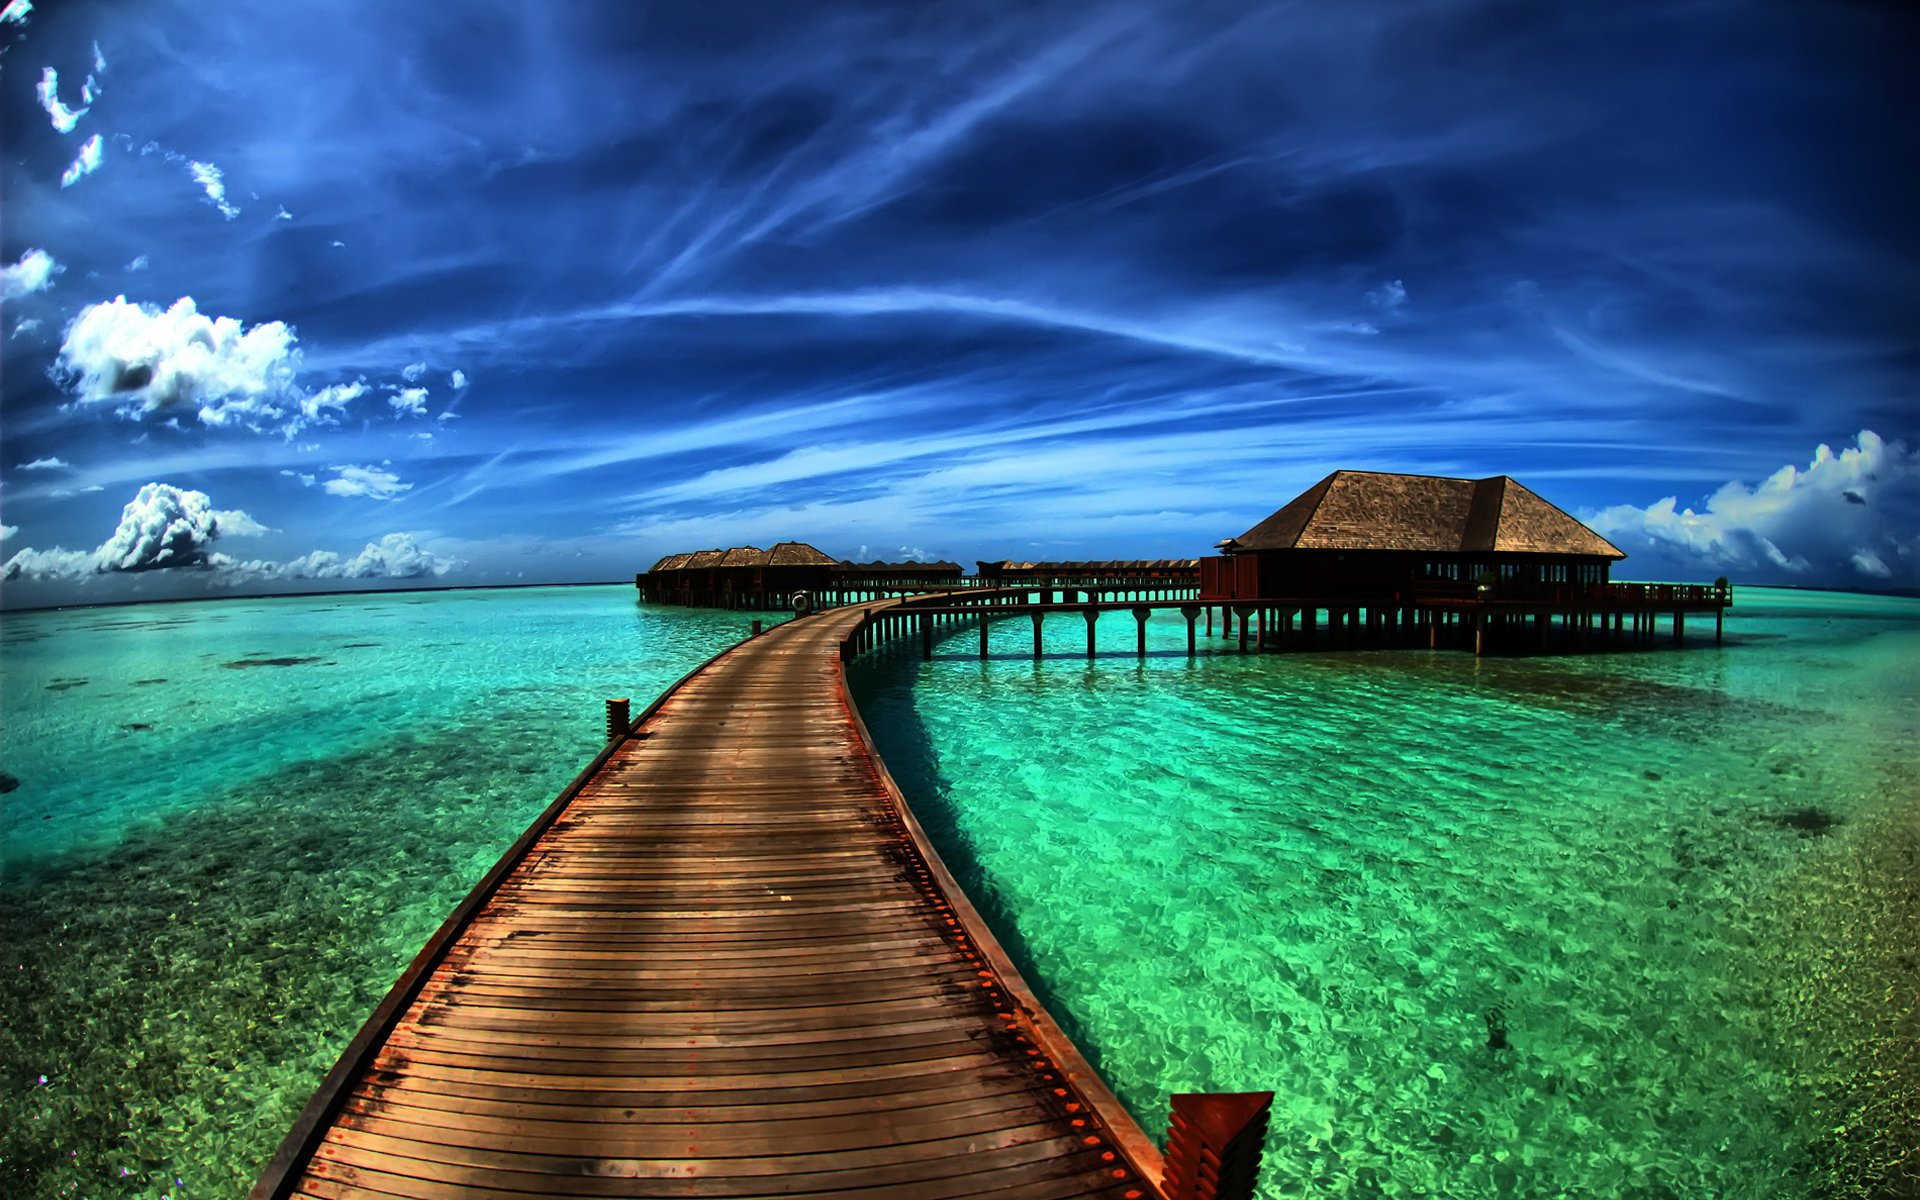 High Definition Wallpapers 1080p For Desktop Download 1920x1200